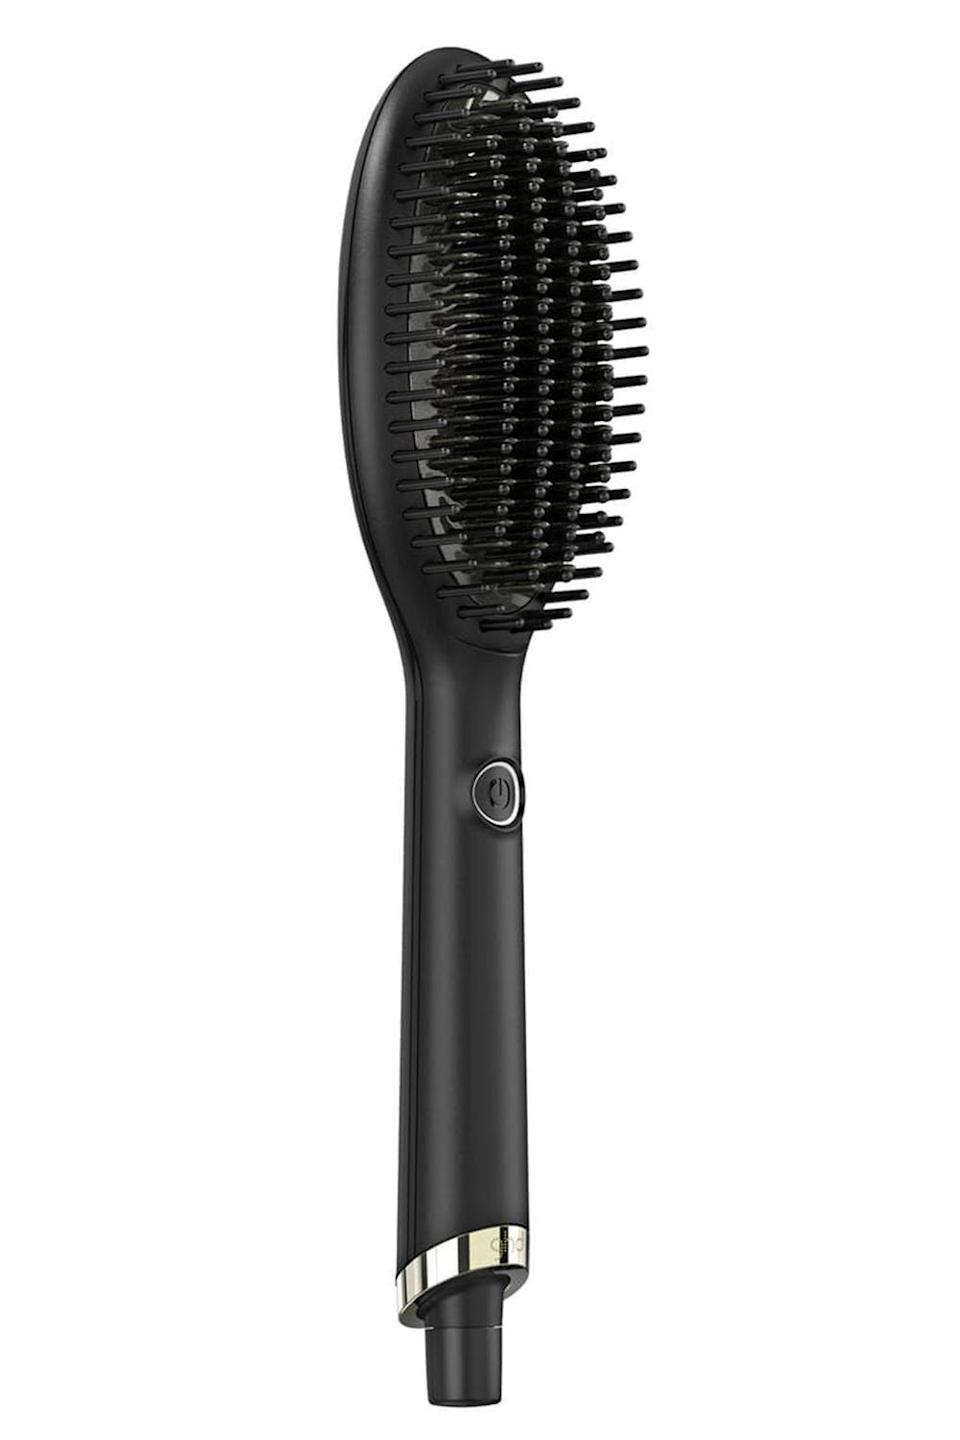 "<p><strong>ghd</strong></p><p>sephora.com</p><p><strong>$169.00</strong></p><p><a href=""https://go.redirectingat.com?id=74968X1596630&url=https%3A%2F%2Fwww.sephora.com%2Fproduct%2Fglide-professional-performance-hot-brush-P444071&sref=https%3A%2F%2Fwww.cosmopolitan.com%2Fstyle-beauty%2Fbeauty%2Fg30017766%2Fbest-hair-brushes%2F"" rel=""nofollow noopener"" target=""_blank"" data-ylk=""slk:Shop Now"" class=""link rapid-noclick-resp"">Shop Now</a></p><p>Think of this <a href=""https://www.cosmopolitan.com/style-beauty/beauty/g28788743/best-hair-straightening-brush/"" rel=""nofollow noopener"" target=""_blank"" data-ylk=""slk:hair-straightening brush"" class=""link rapid-noclick-resp"">hair-straightening brush</a> as your brush and <a href=""https://www.cosmopolitan.com/style-beauty/beauty/g12837010/best-hair-straightener-flat-iron/"" rel=""nofollow noopener"" target=""_blank"" data-ylk=""slk:flat iron"" class=""link rapid-noclick-resp"">flat iron</a> in one. The ceramic, ion-infused plate <strong>heats up to 365 degrees to straighten and smooth your hair</strong> and prevent frizz. Even better, it has densely-packed short and long bristles to help you style larger sections of hair with fewer passes.</p>"